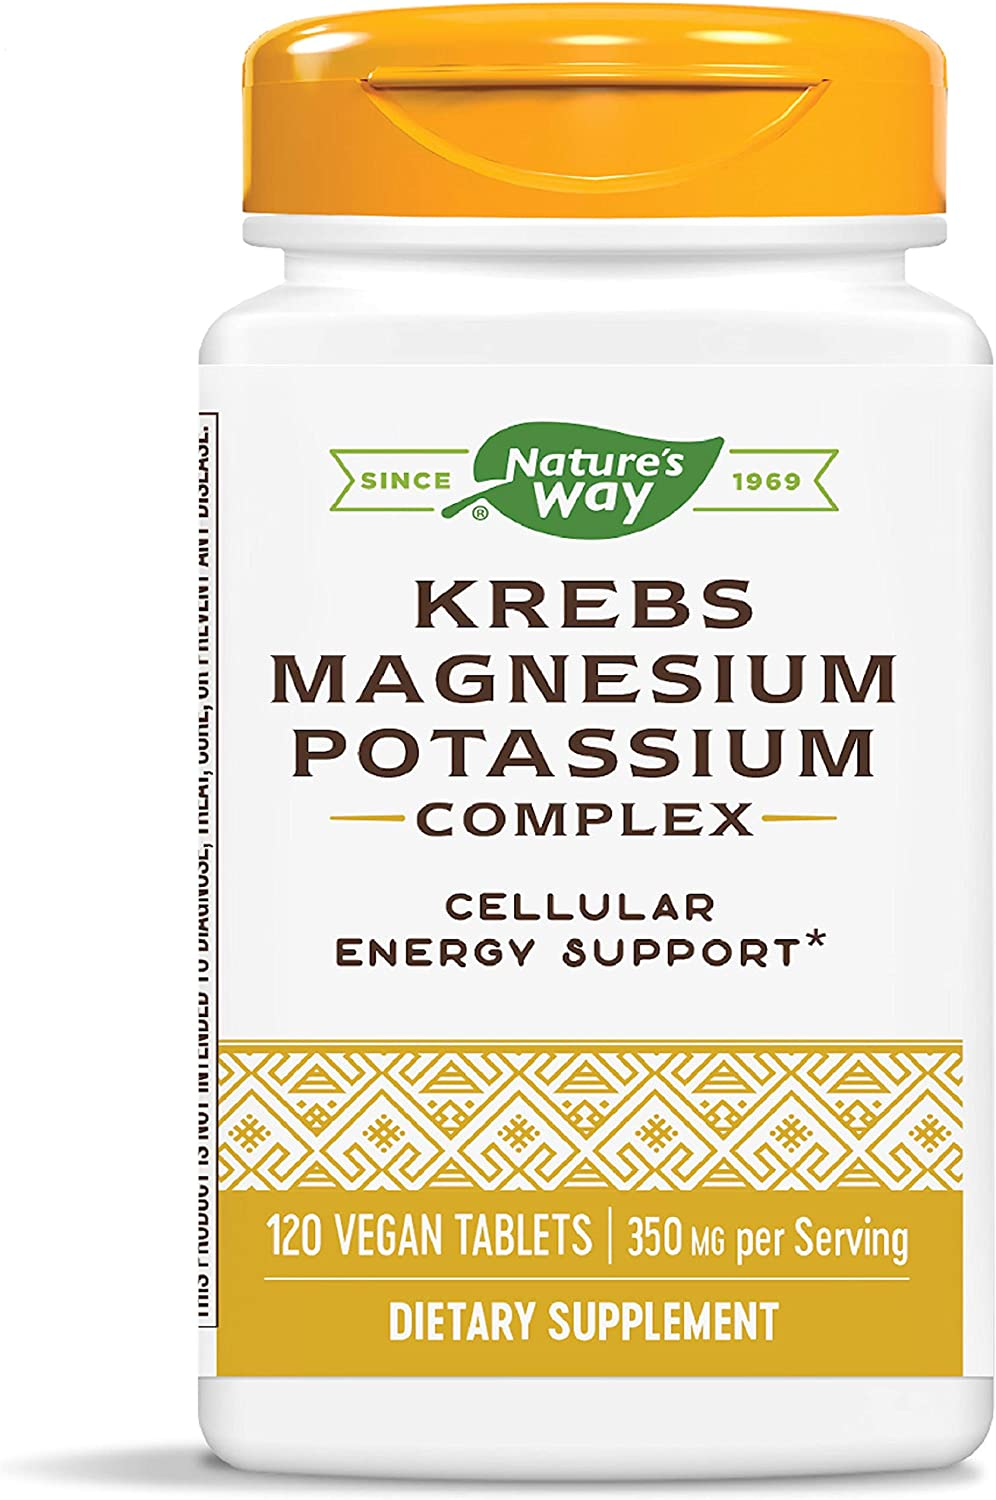 Nature's Way Krebs Magnesium Potassium Complex, 350 mg per Serving, Energy & Heart Health, 120 Count